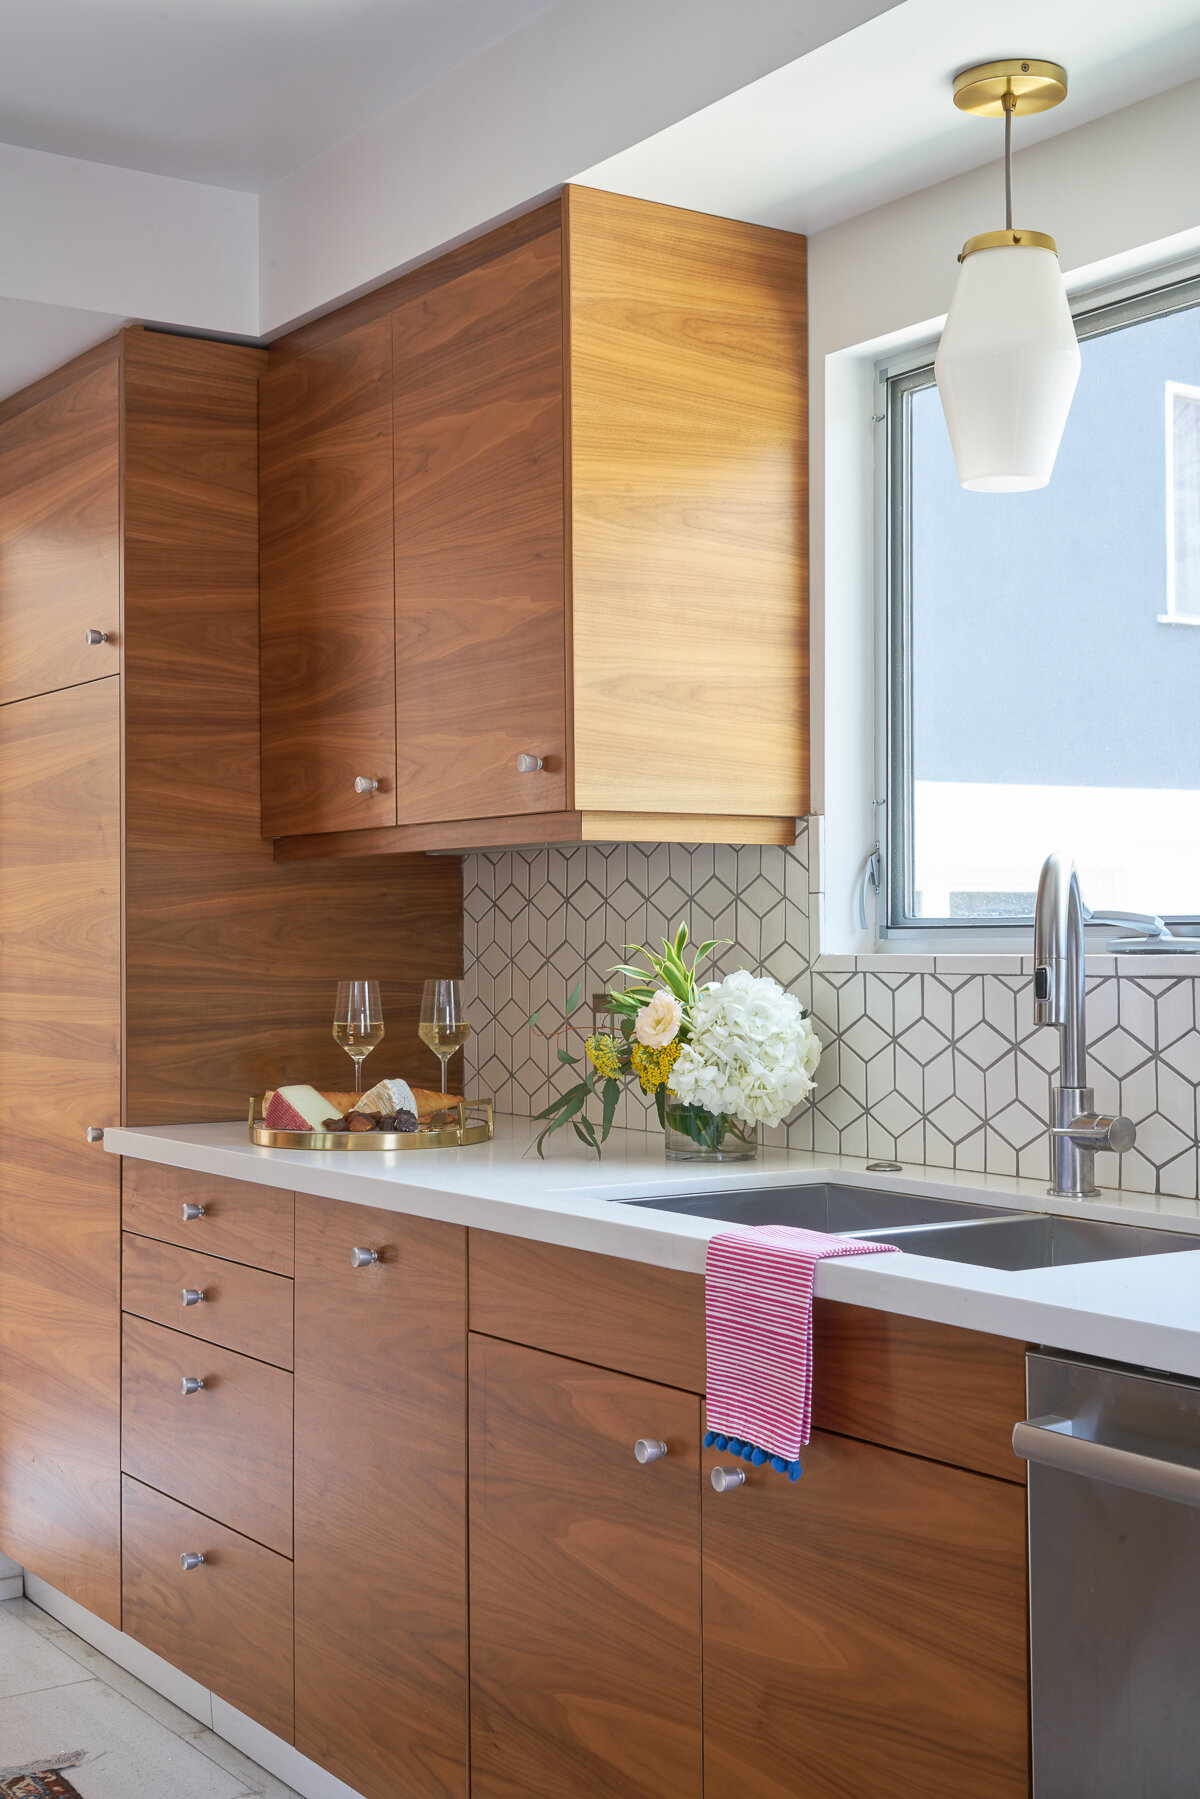 7 Easy And Inexpensive Upgrades To Your Kitchen